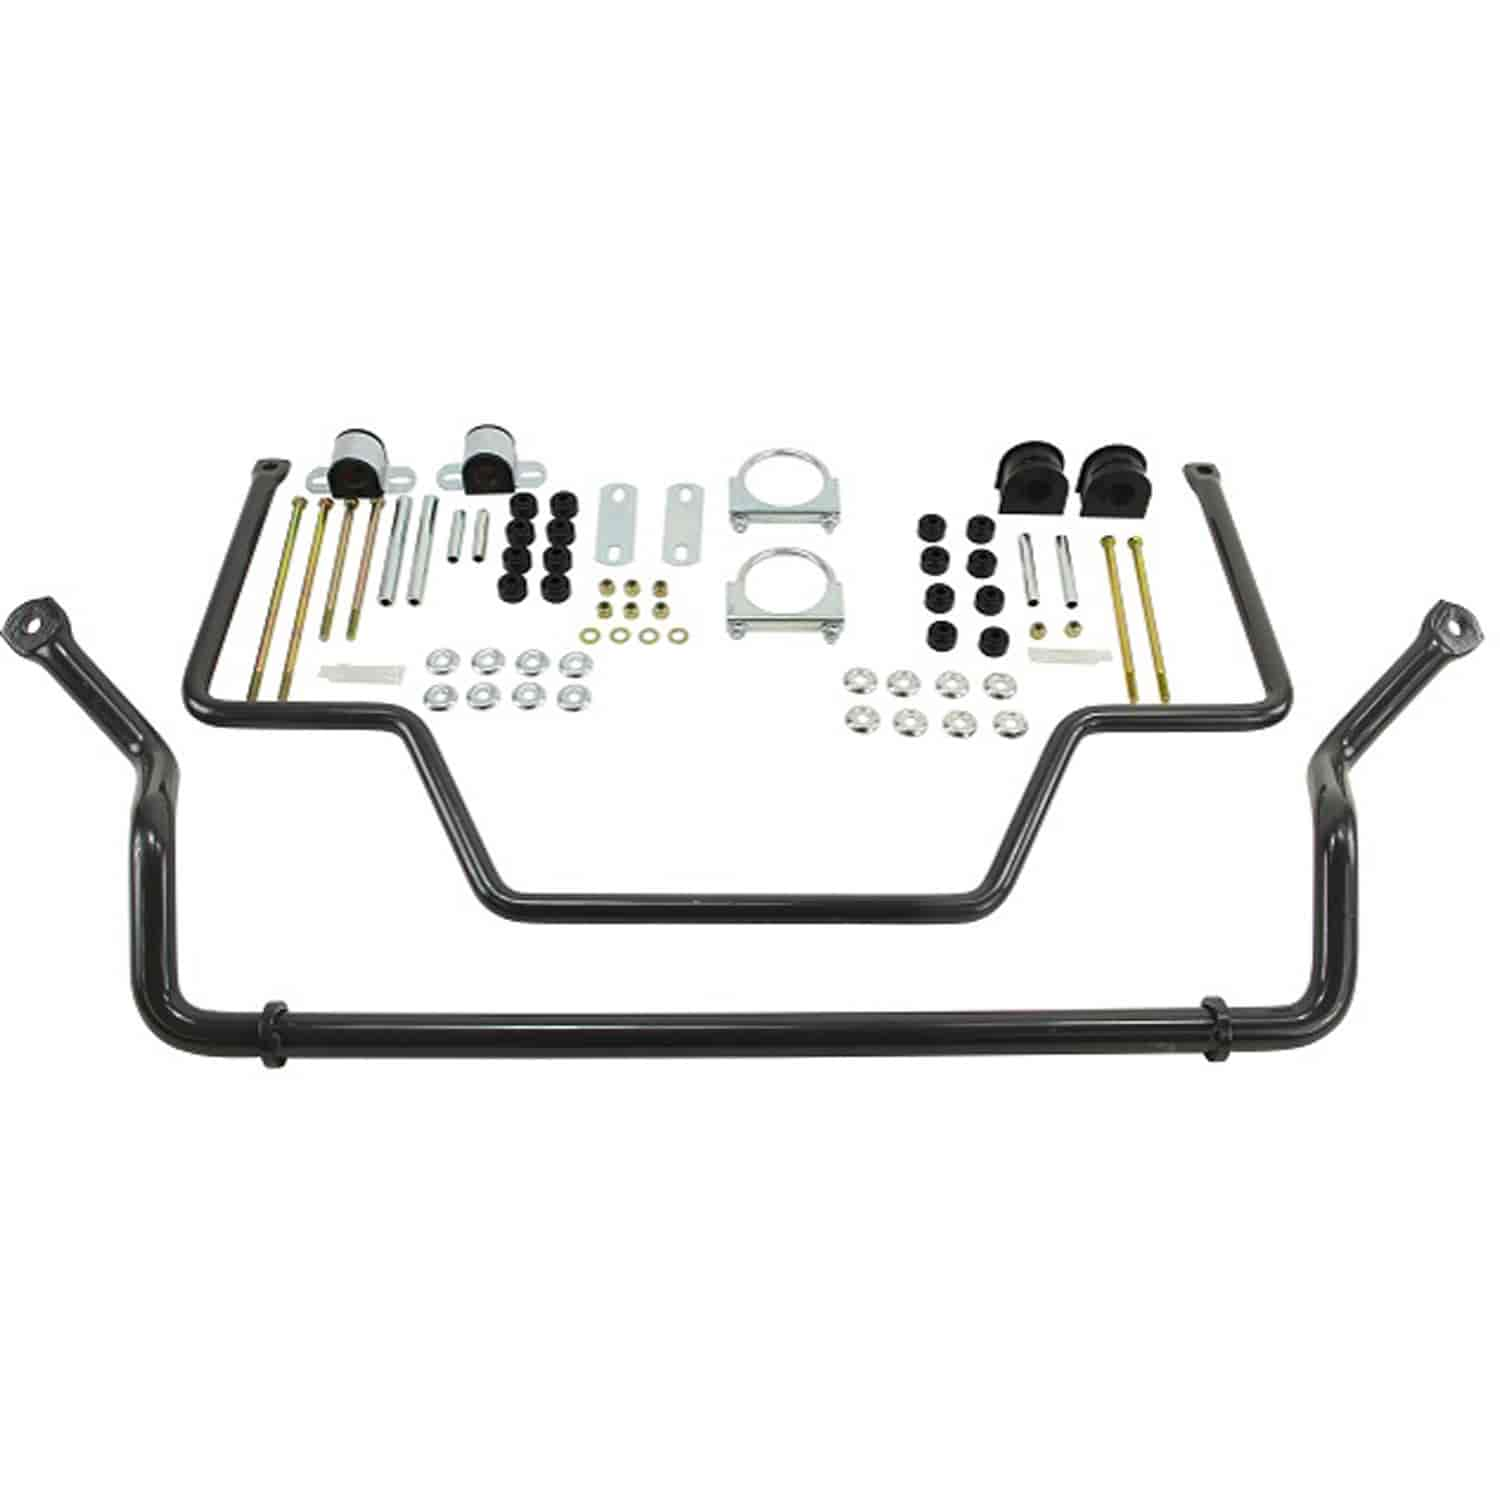 Belltech 9919: Front/Rear Sway Bar Kit for 1997-2003 Ford